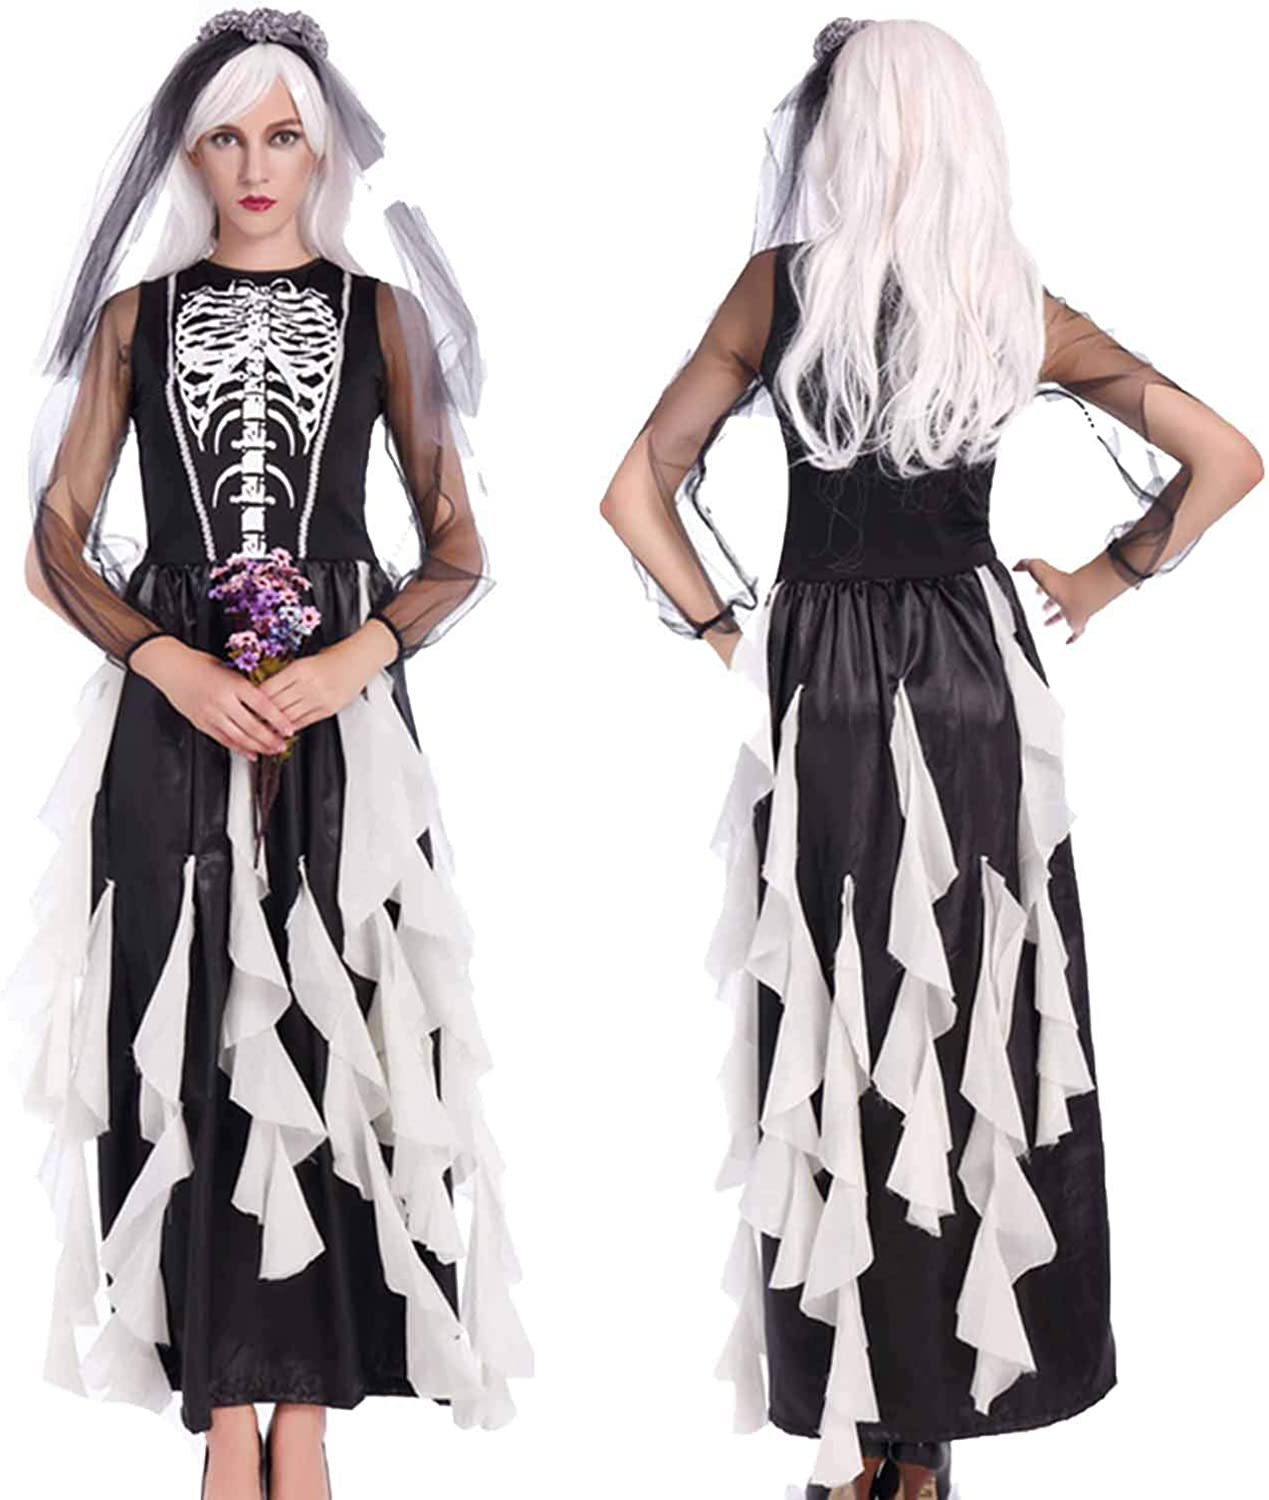 Ladies Corpse Bride Costume Halloween Womens Fancy Dress Outfit